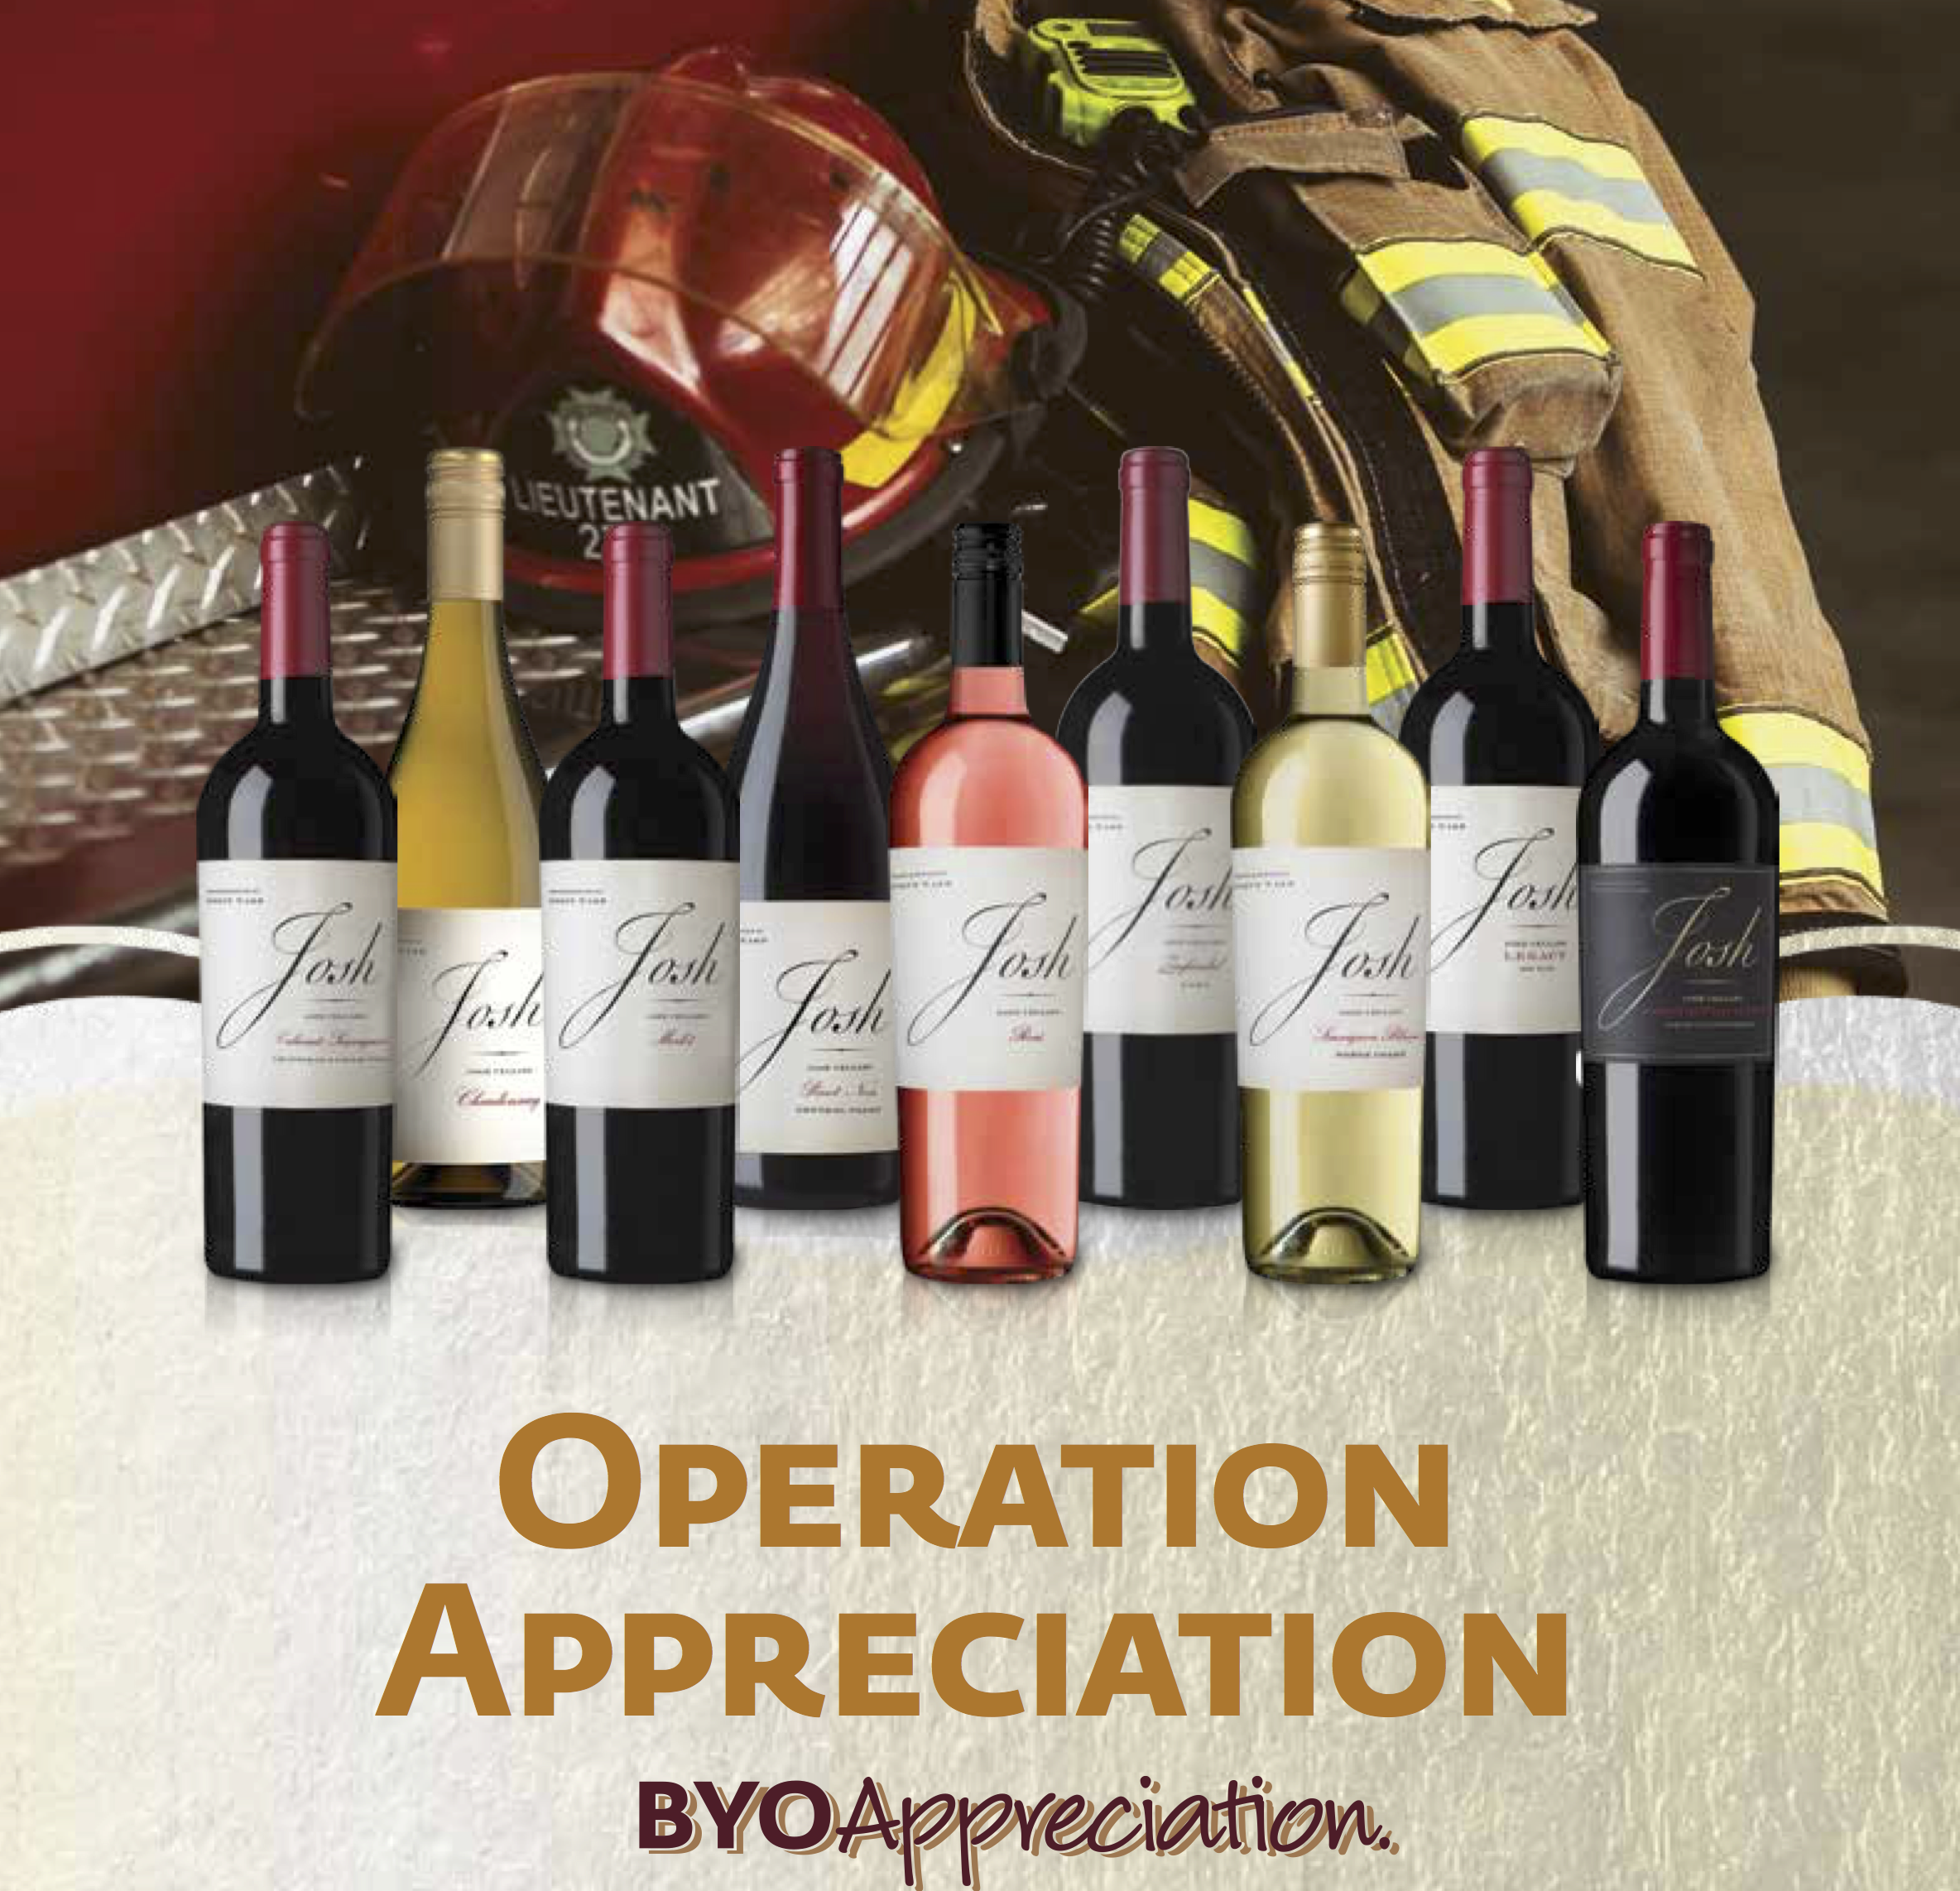 OperationAppreciation_BYO_EC_CaseCard_8.5x11 cropped.png